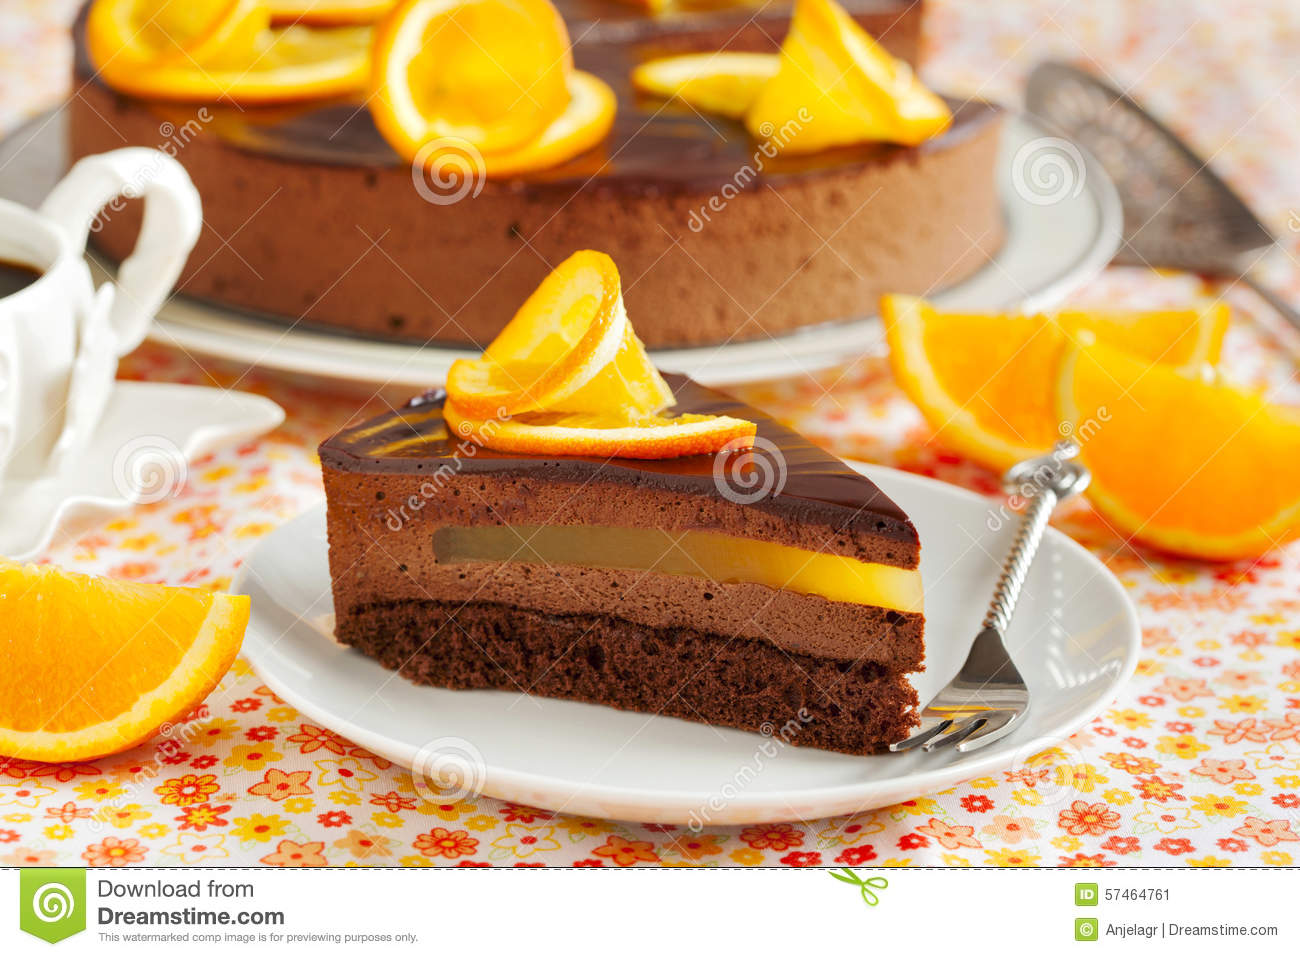 Orange Chocolate Mousse Cake Stock Photo - Image: 57464761